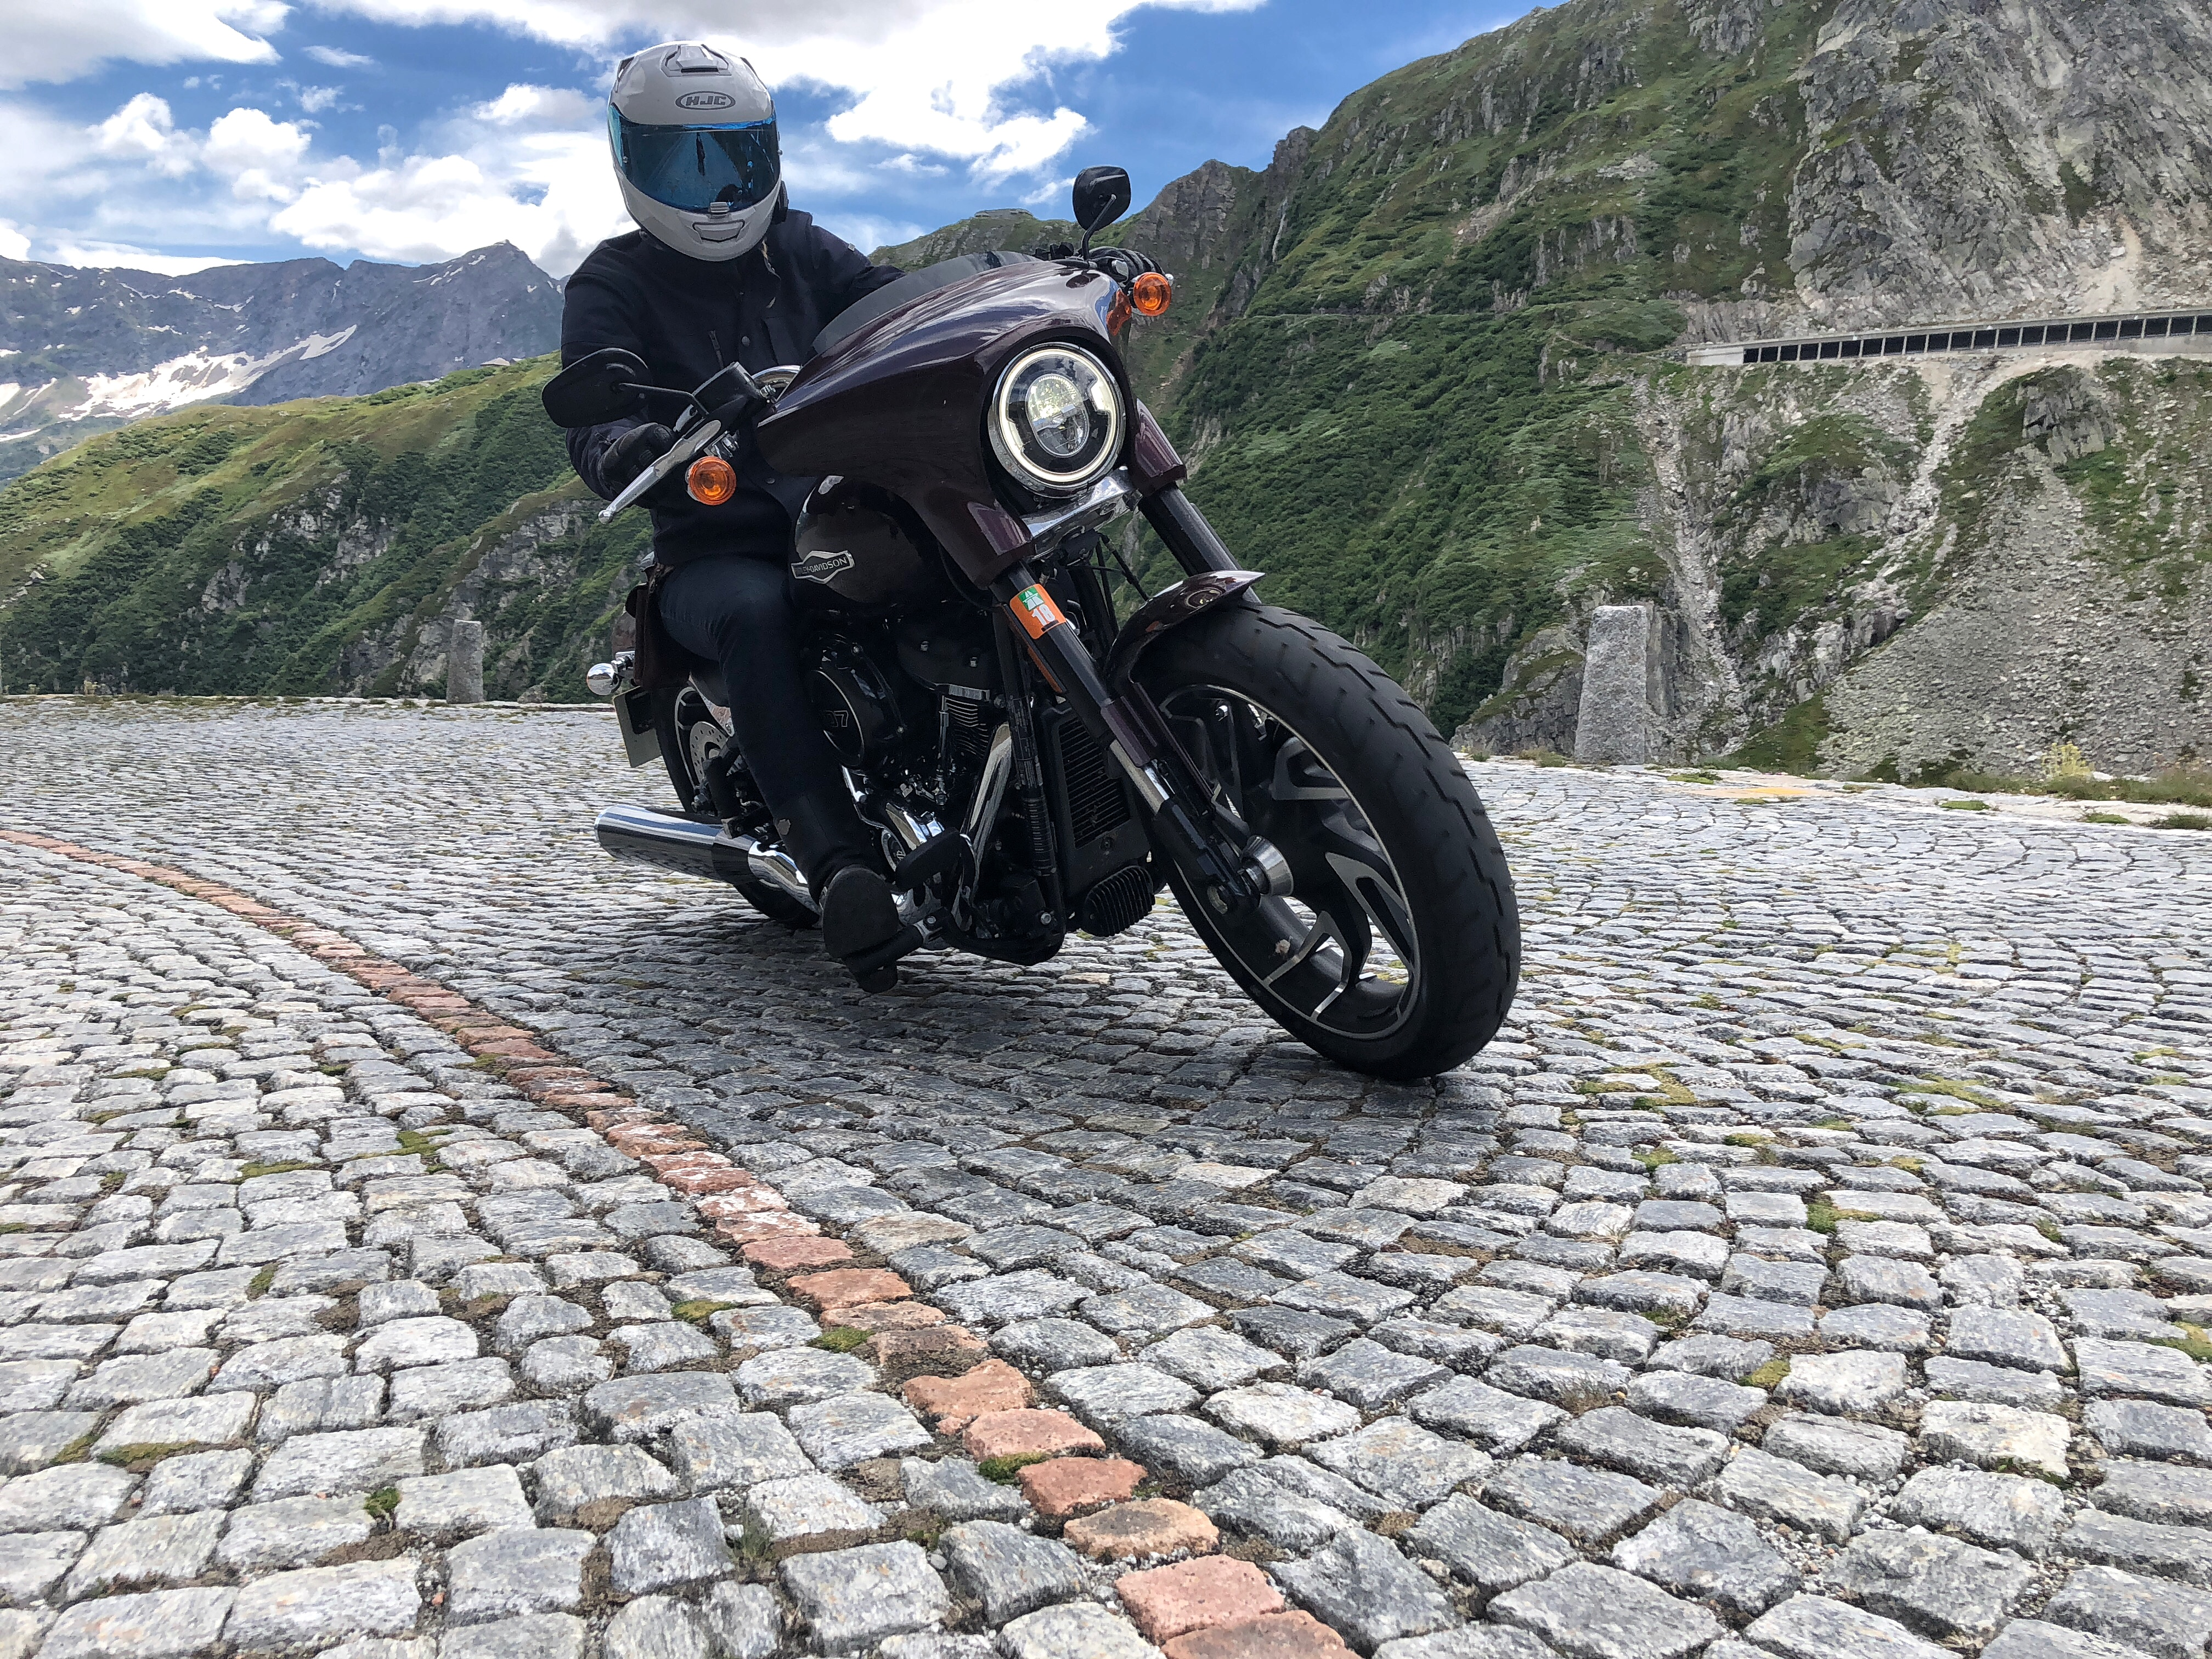 2018 Harley Davidson Sport Glide Review 187 The Girl On A Bike